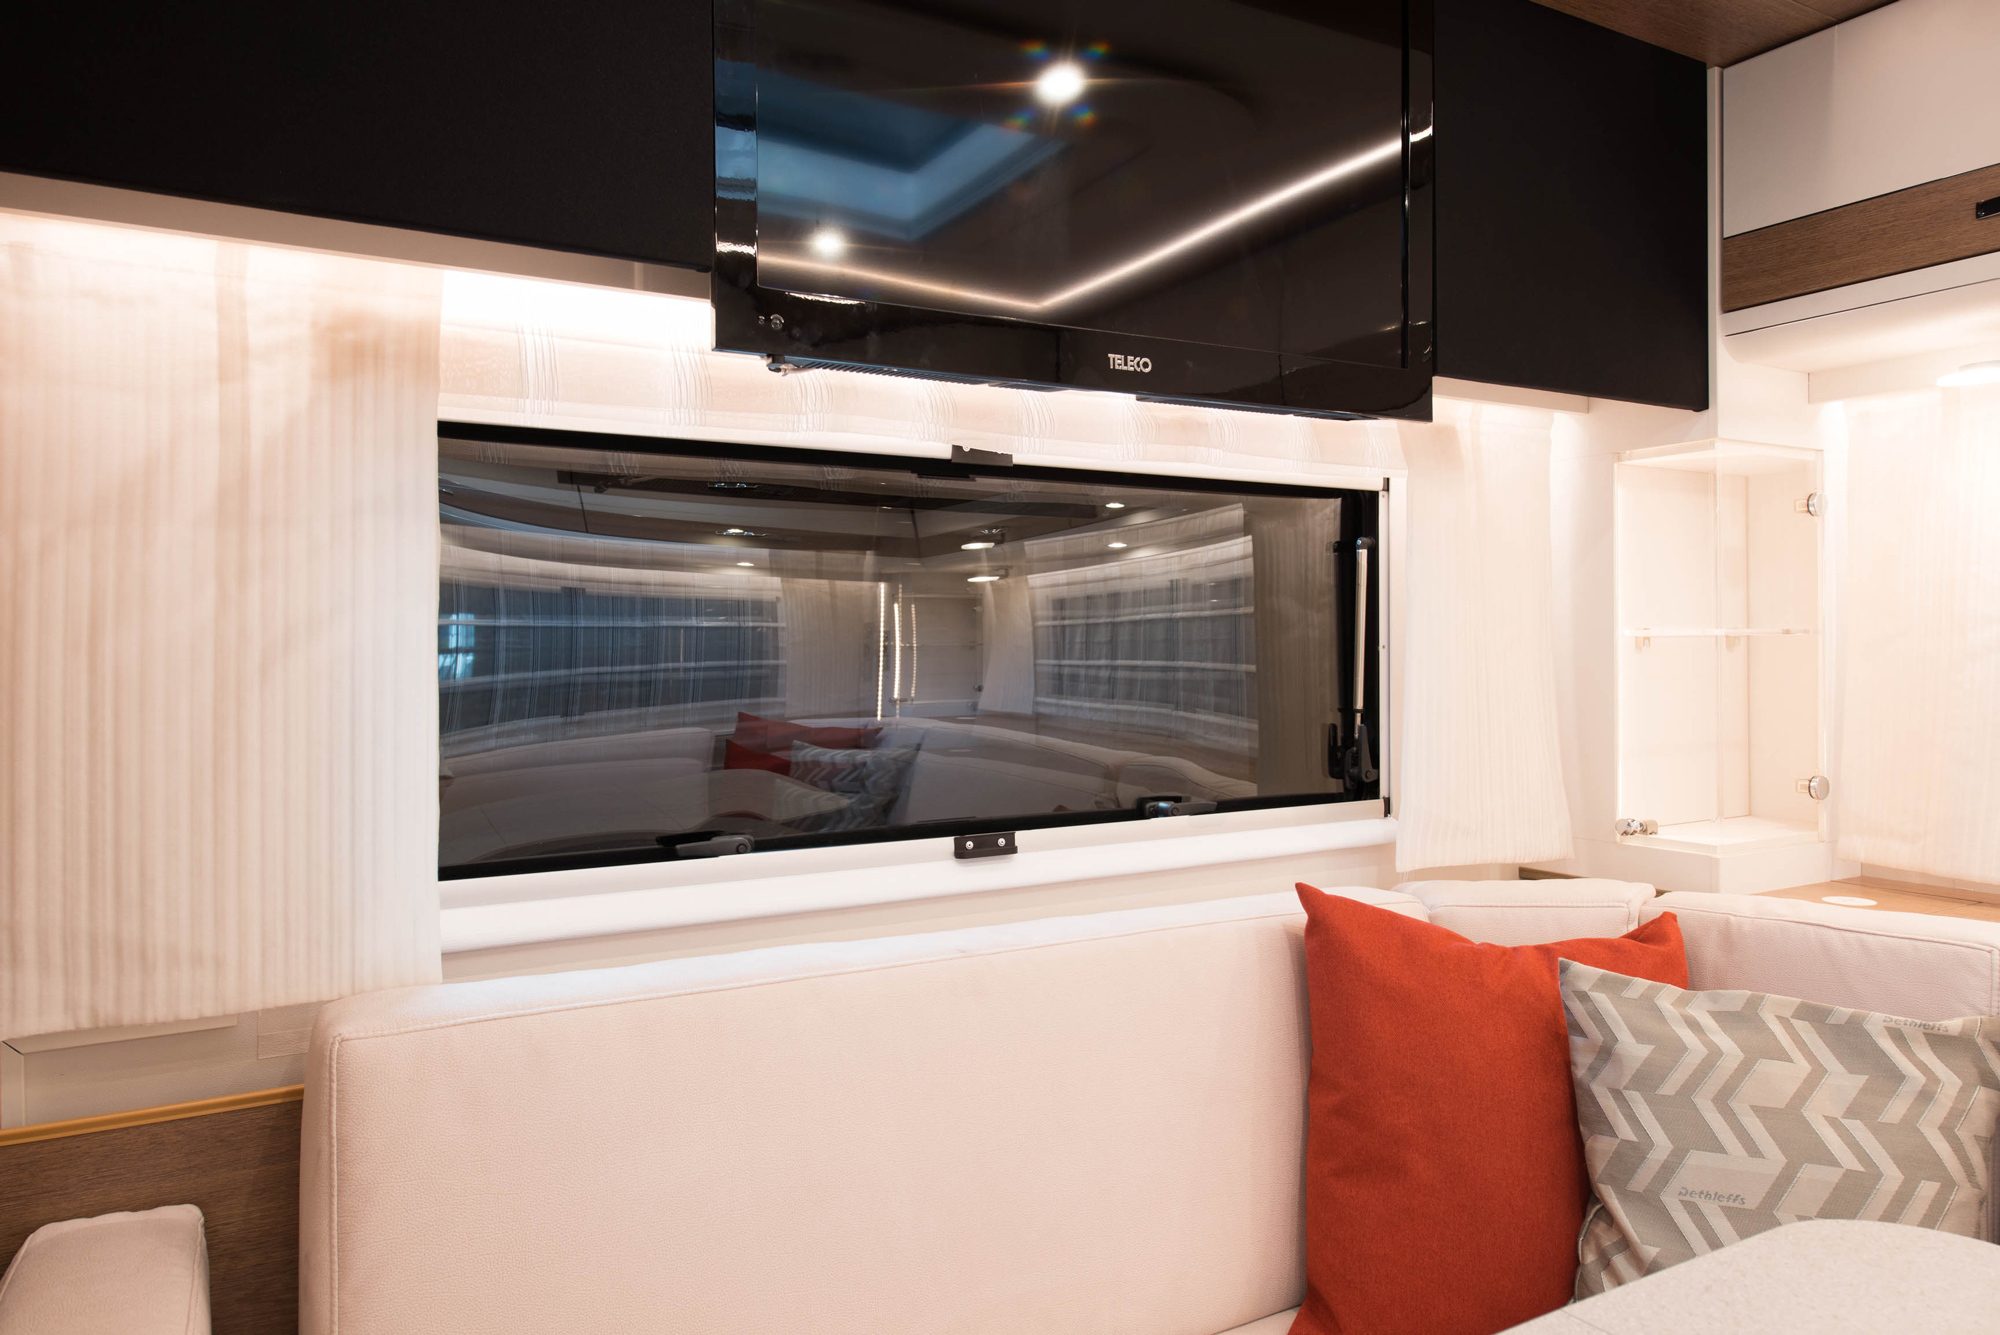 Electric Motorhomes Are Coming A New Rv Powered By Solar Panels And Systems Information Dethleffs Partnered With Victron Energy To Install Thin High Efficiency On Almost The Entire Surface Of Vehicle